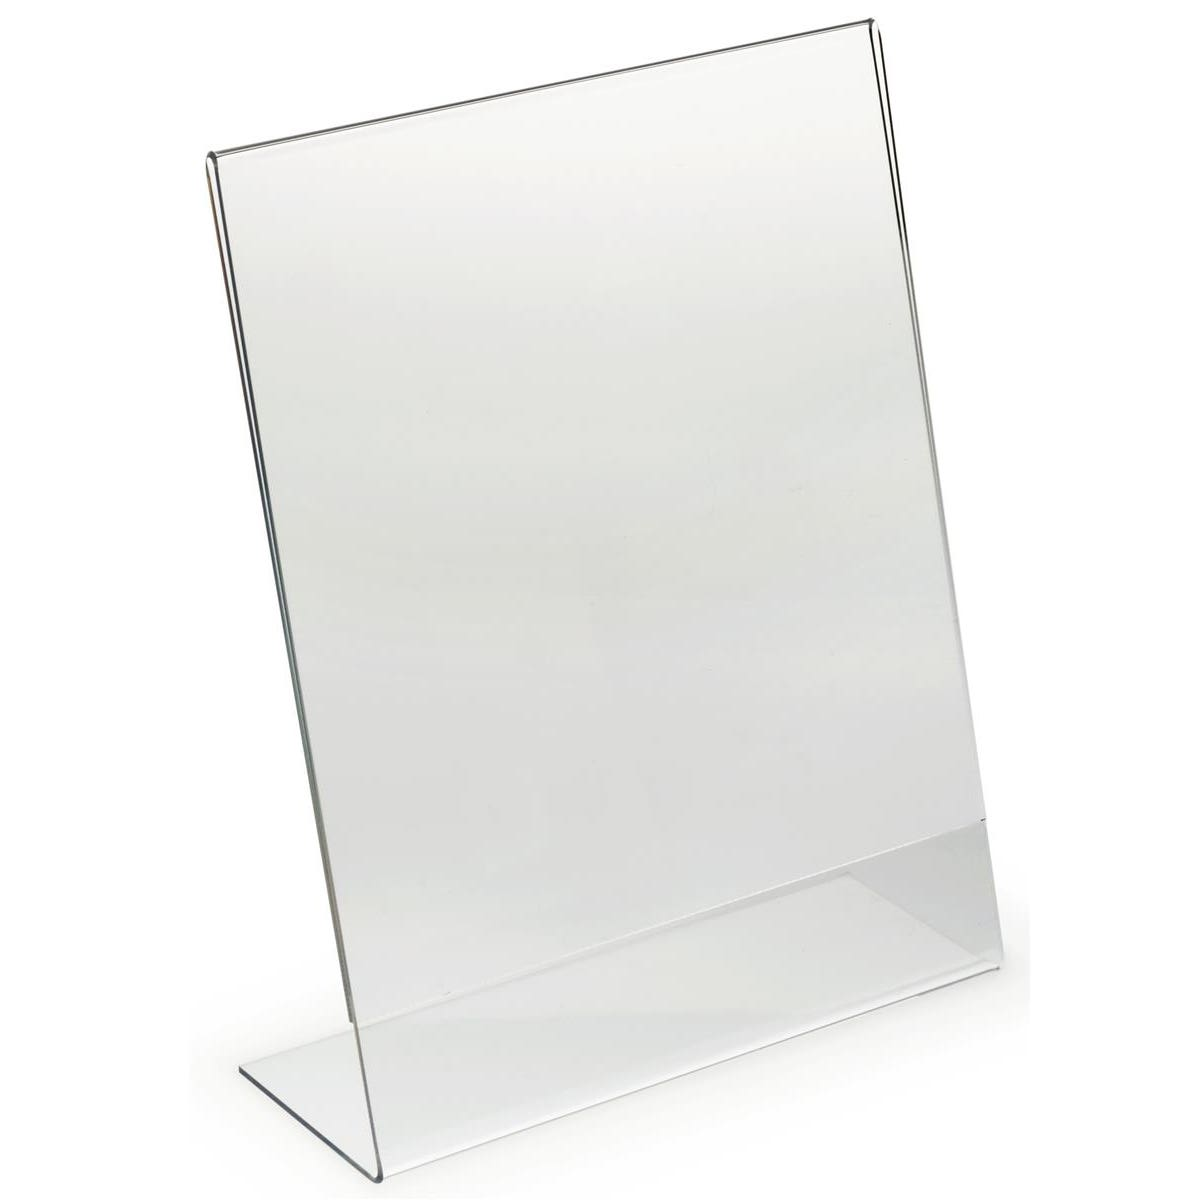 Acrylic Free Standing Poster Holder